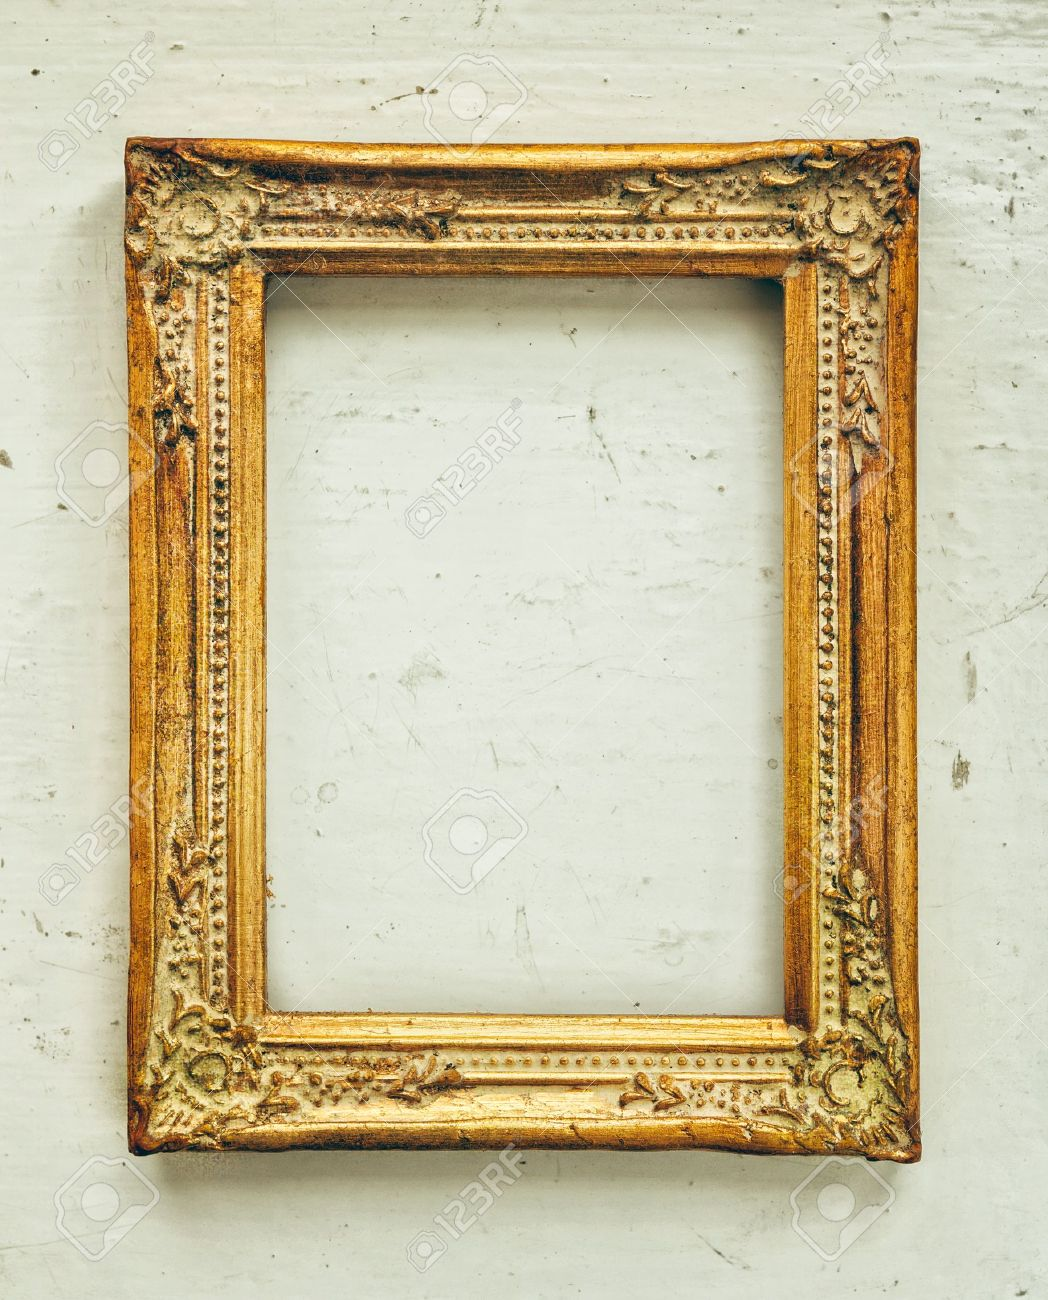 Golden Old Frame On The Grunge Background Stock Photo, Picture And ...